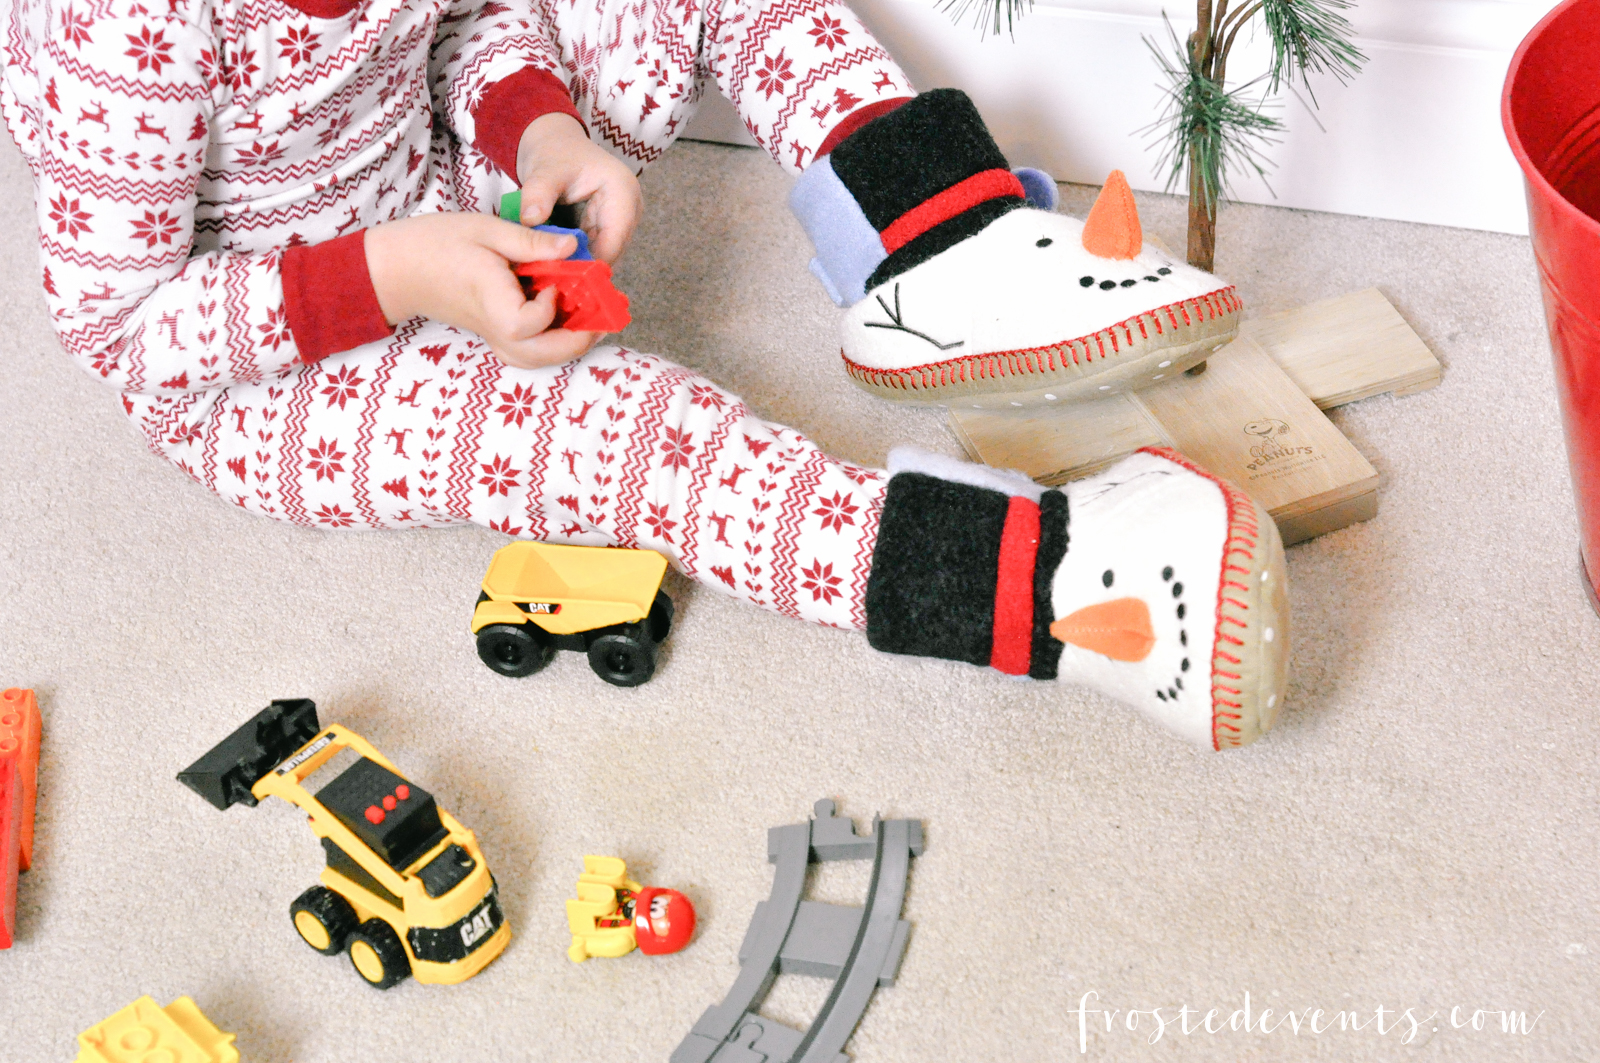 holiday-traditions-holiday-pajamas-christmas-stories-new-carpet-misty-nelson-frostedevents-16